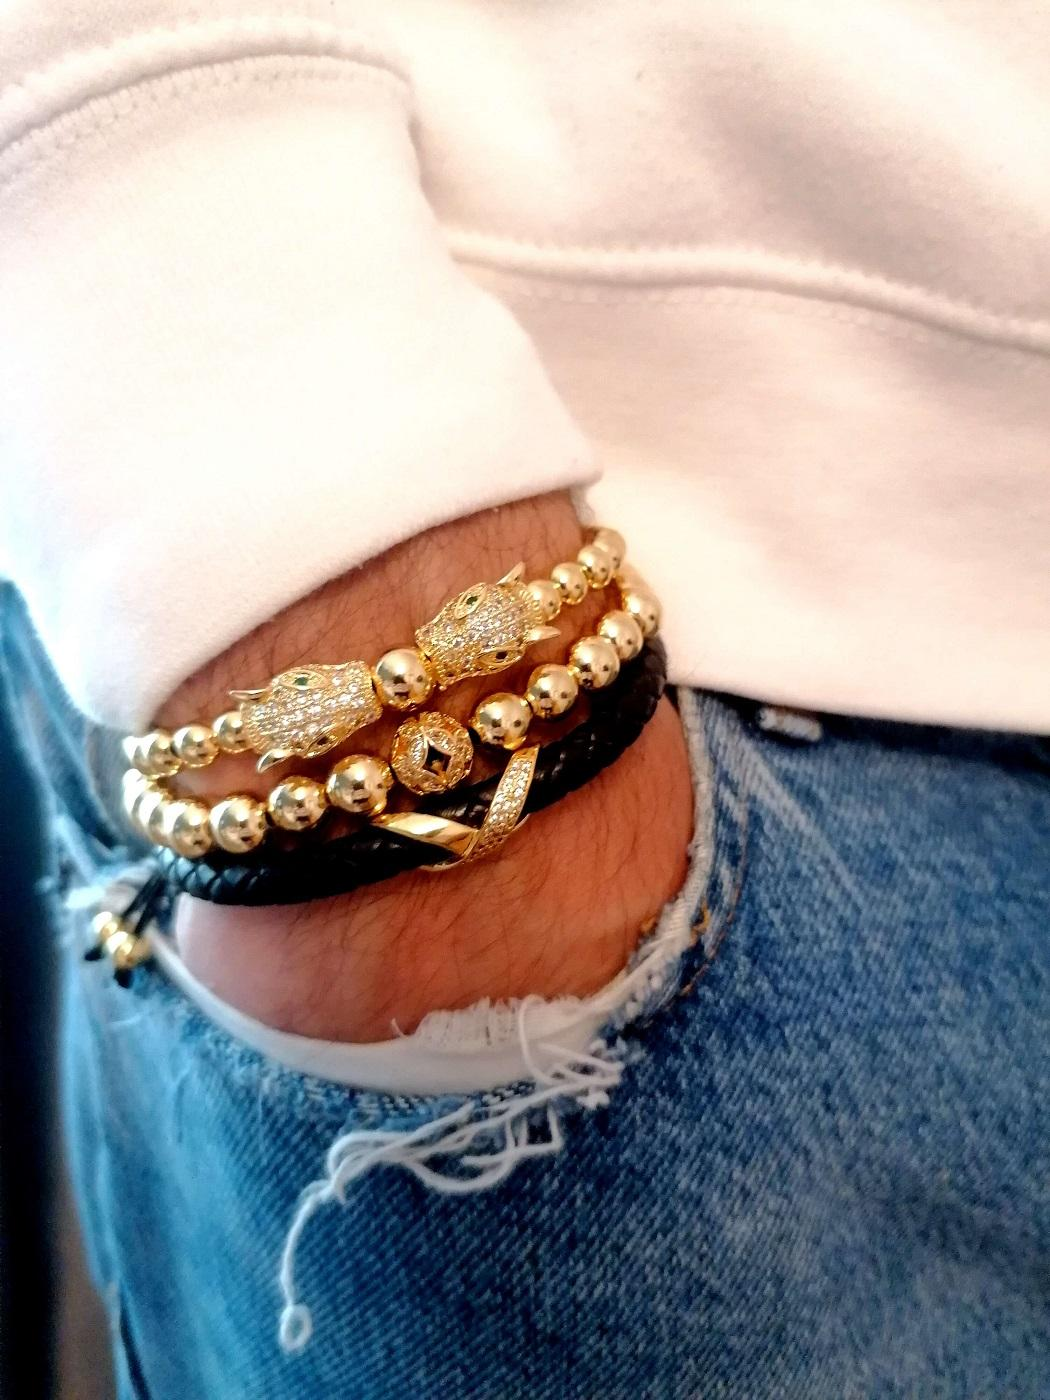 King And Queen Bracelets Gold, King Crown Bracelet Gold, King Golden Bracelet, Men's Bracelets Gold, Mens Bracelets Gold, Mens Diamond Bracelet White Gold, Mens Gold Bracelet Price, Mens Gold Bracelets, Mens Gold Bracelets For Sale, Mens Gold Bracelets Near Me, Rose Gold Crown Bracelet, Rose Gold Crown Charm Bracelet, 14K White Gold Tennis Bracelet, Women Gold Bangle Bracelet with Charm